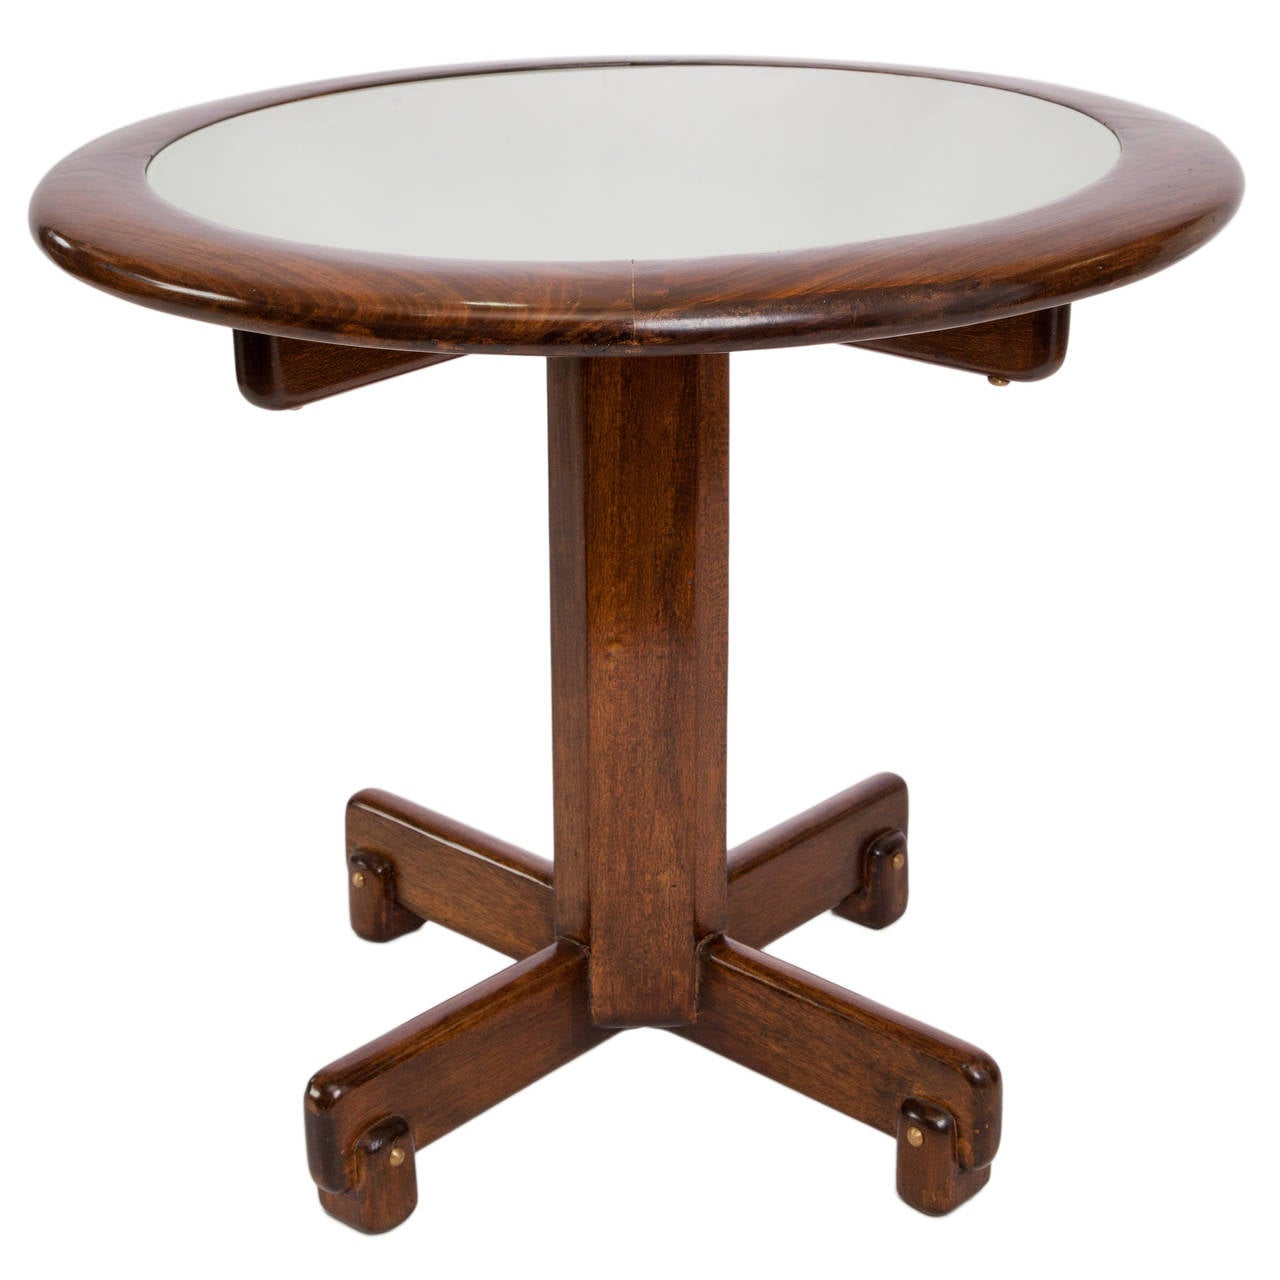 Celina Moveis Round Side Table in Brazilian Jacaranda Wood with